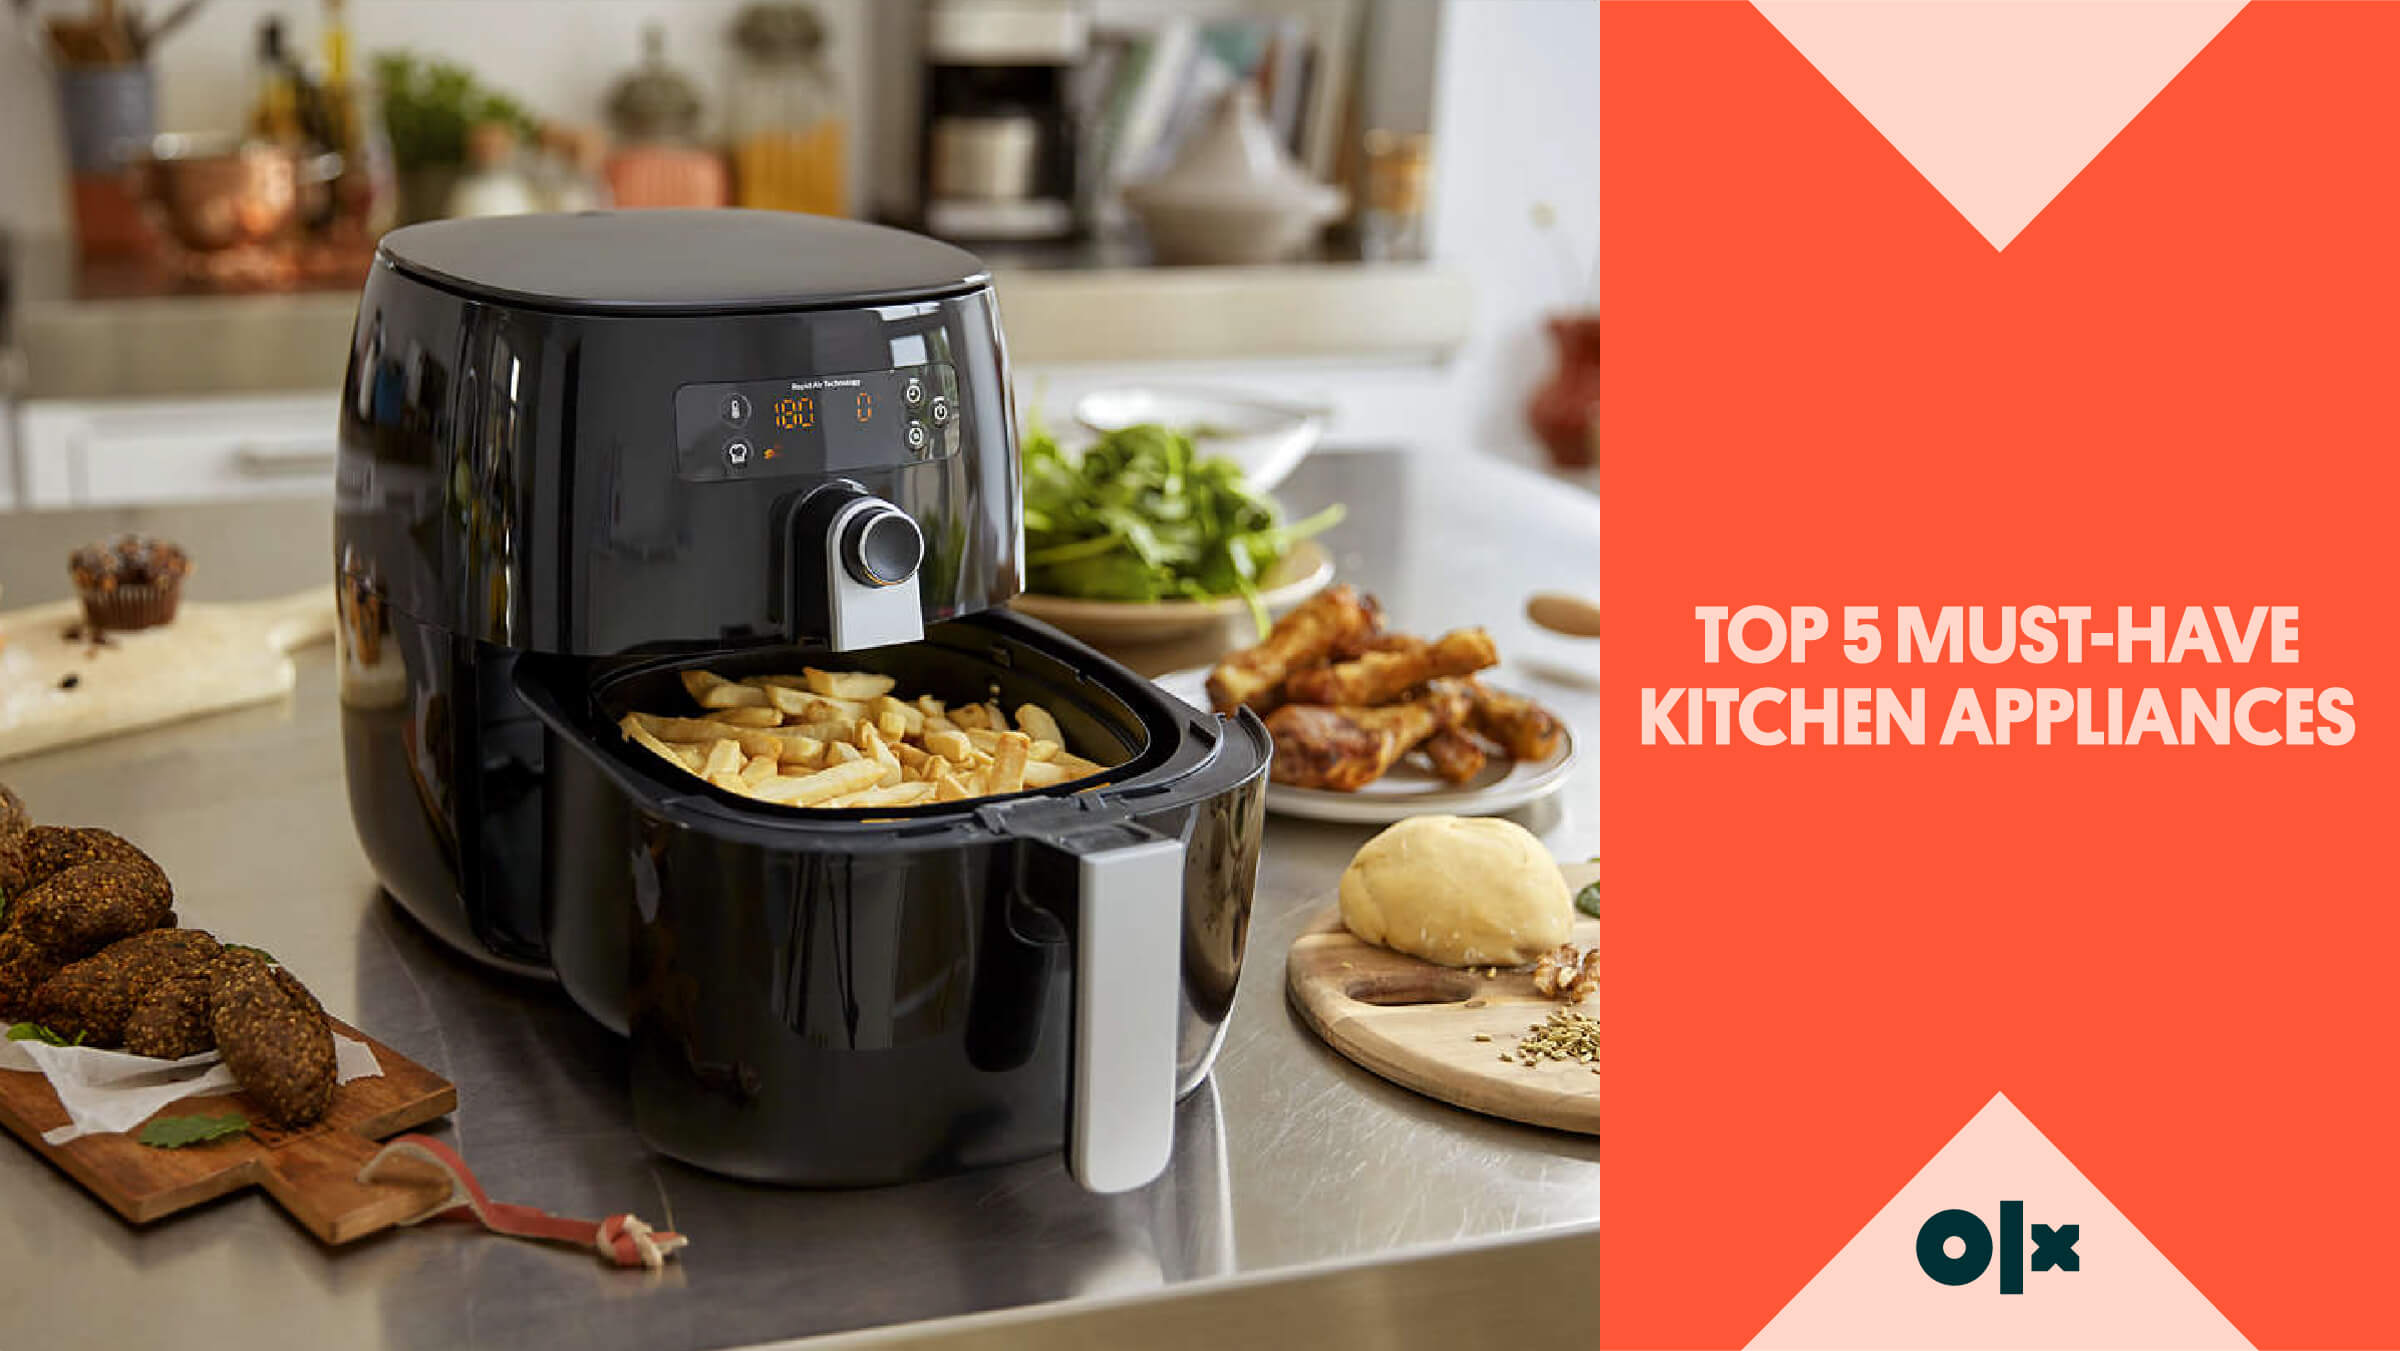 Top 5 Must-Have Kitchen Appliances